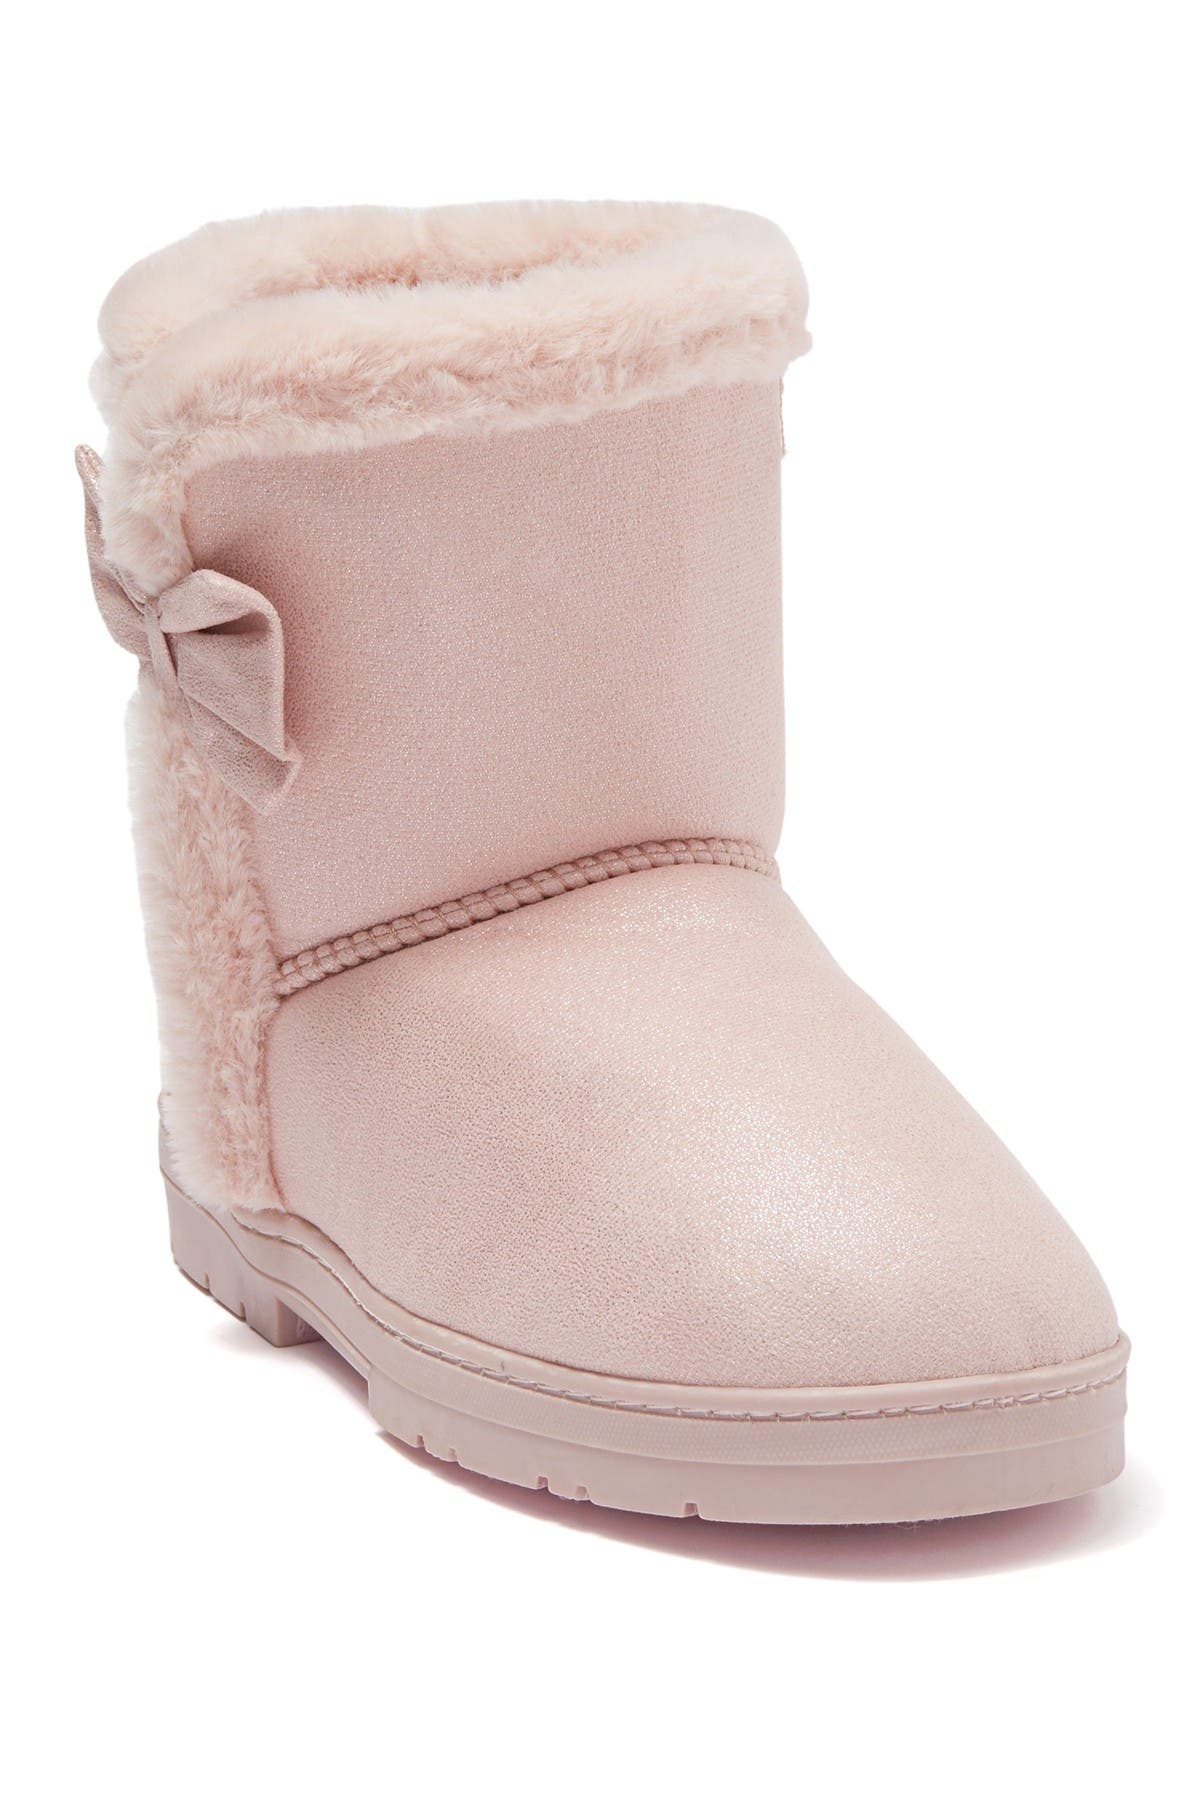 Bebe Faux Fur Lined Shimmer Microsuede Boot